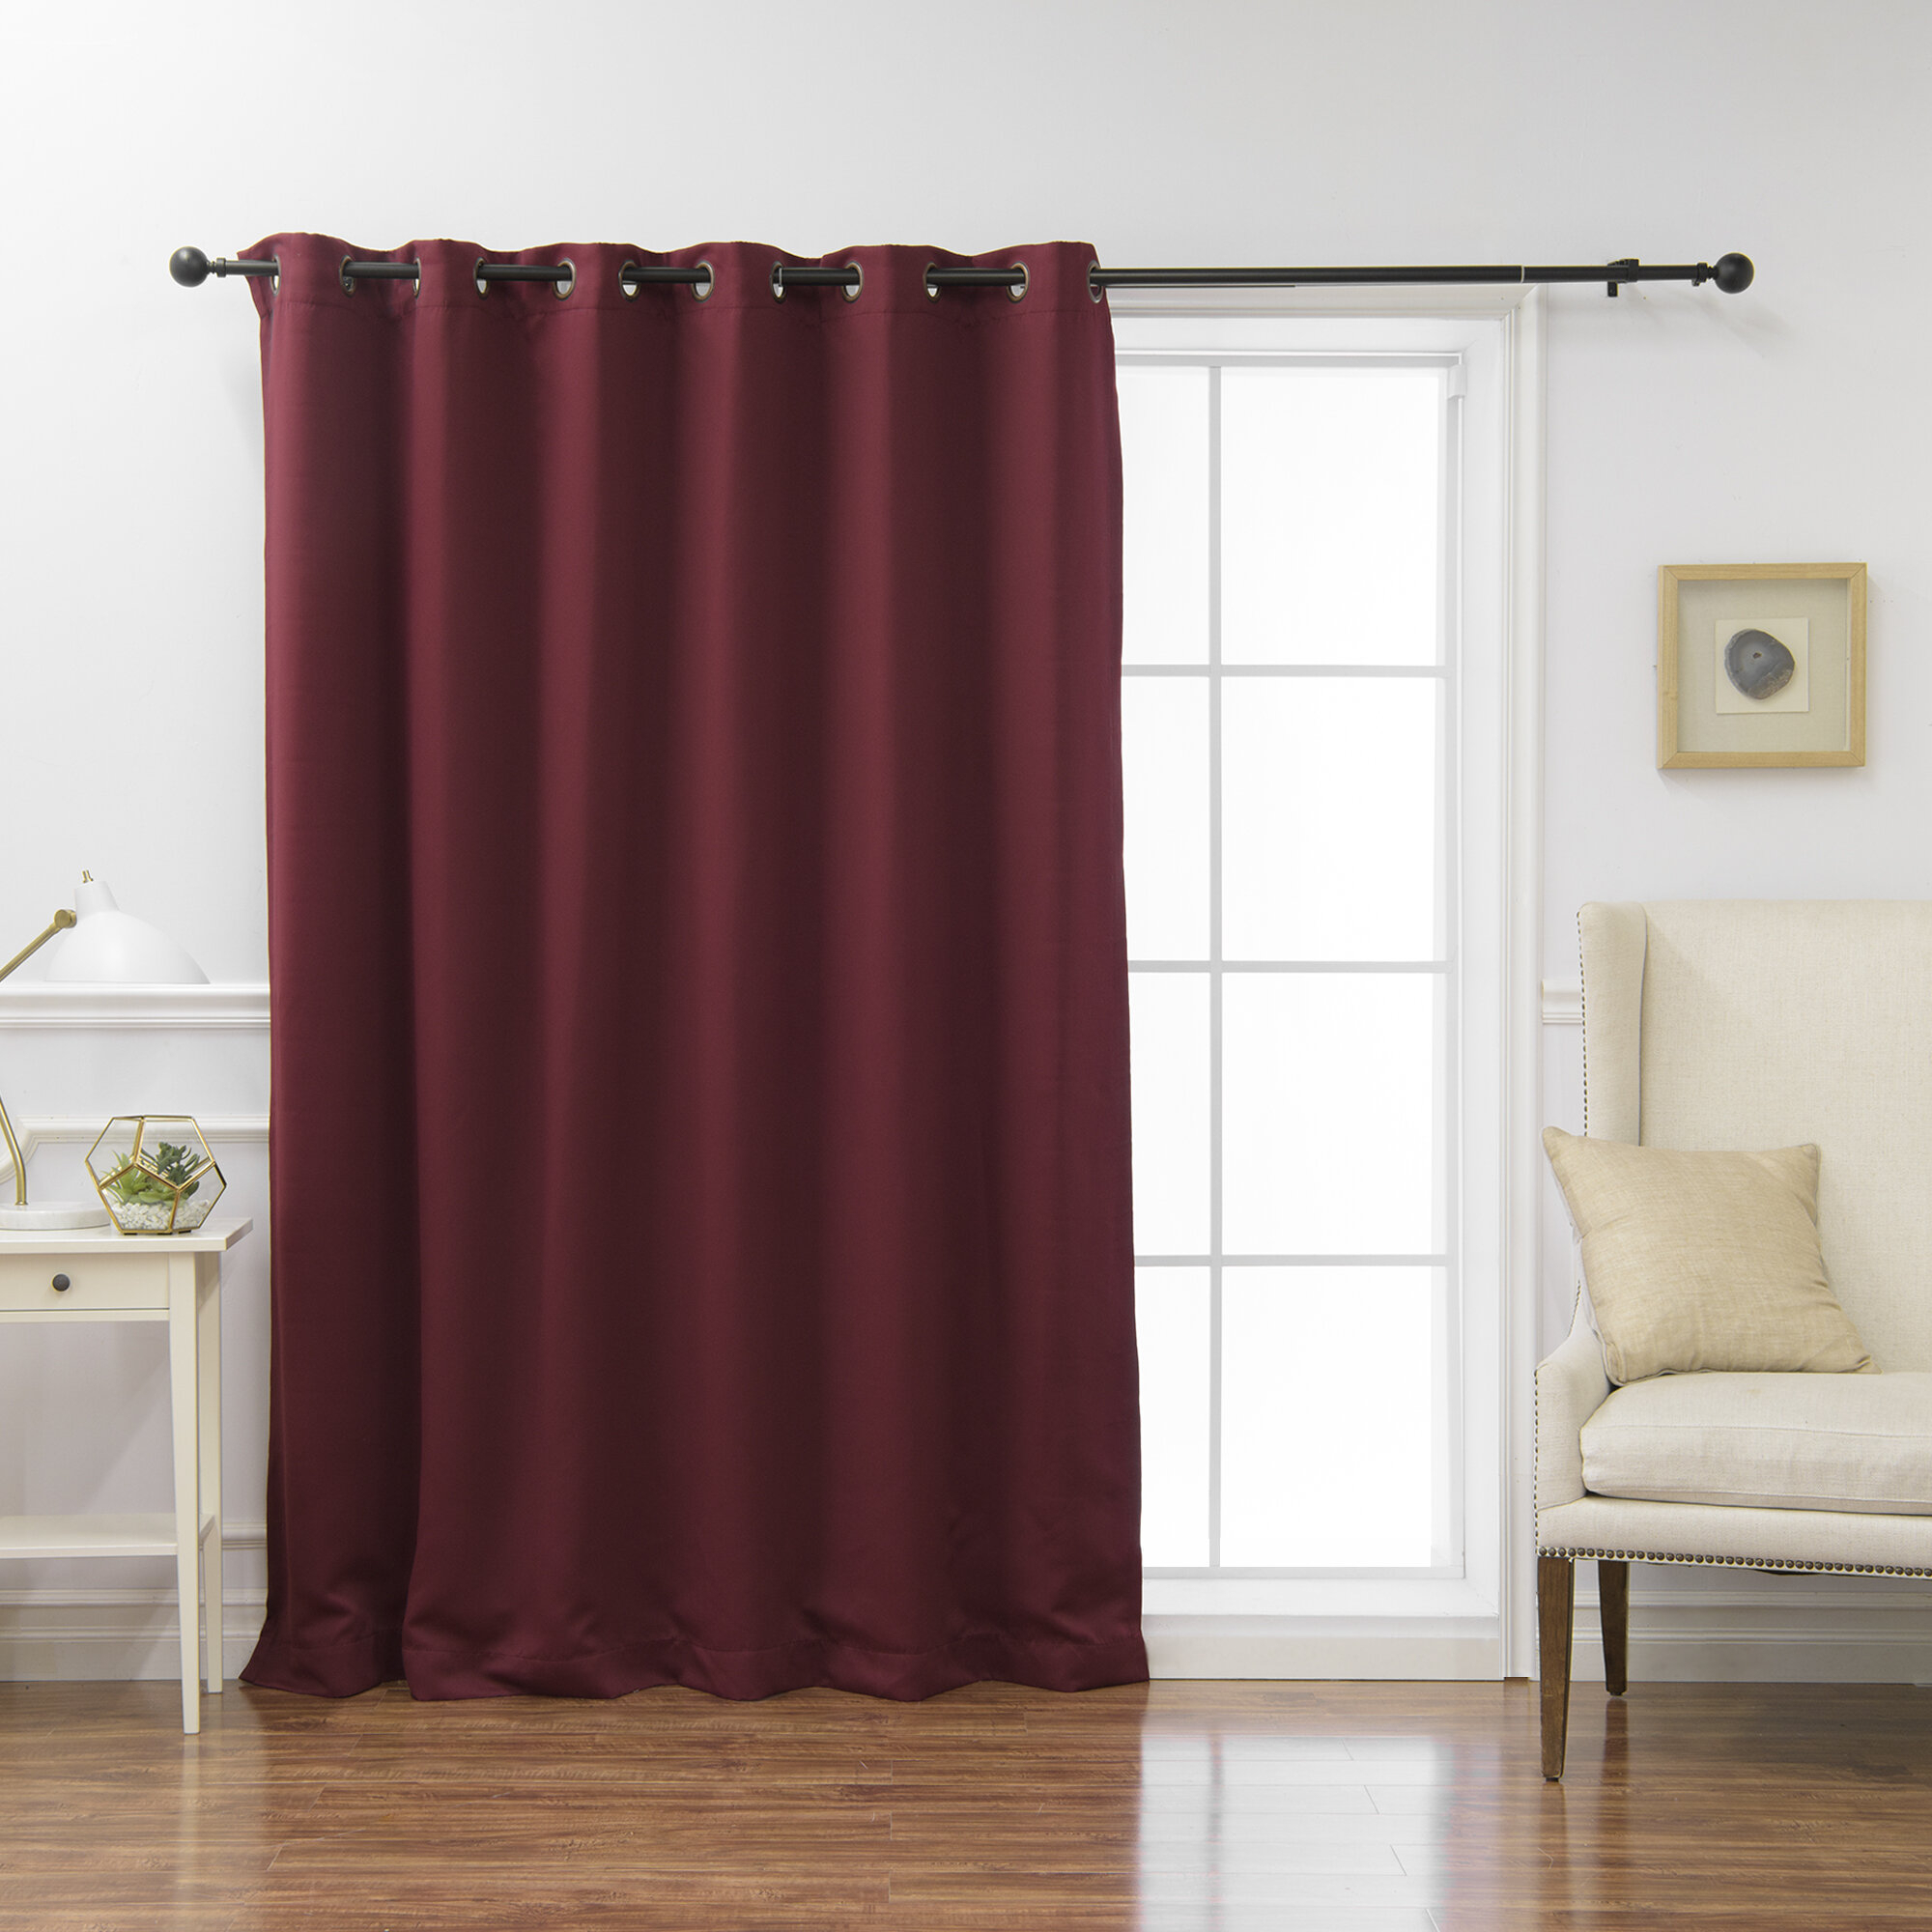 Extra Wide Drapes | Wayfair Within Faux Linen Extra Wide Blackout Curtains (View 20 of 20)